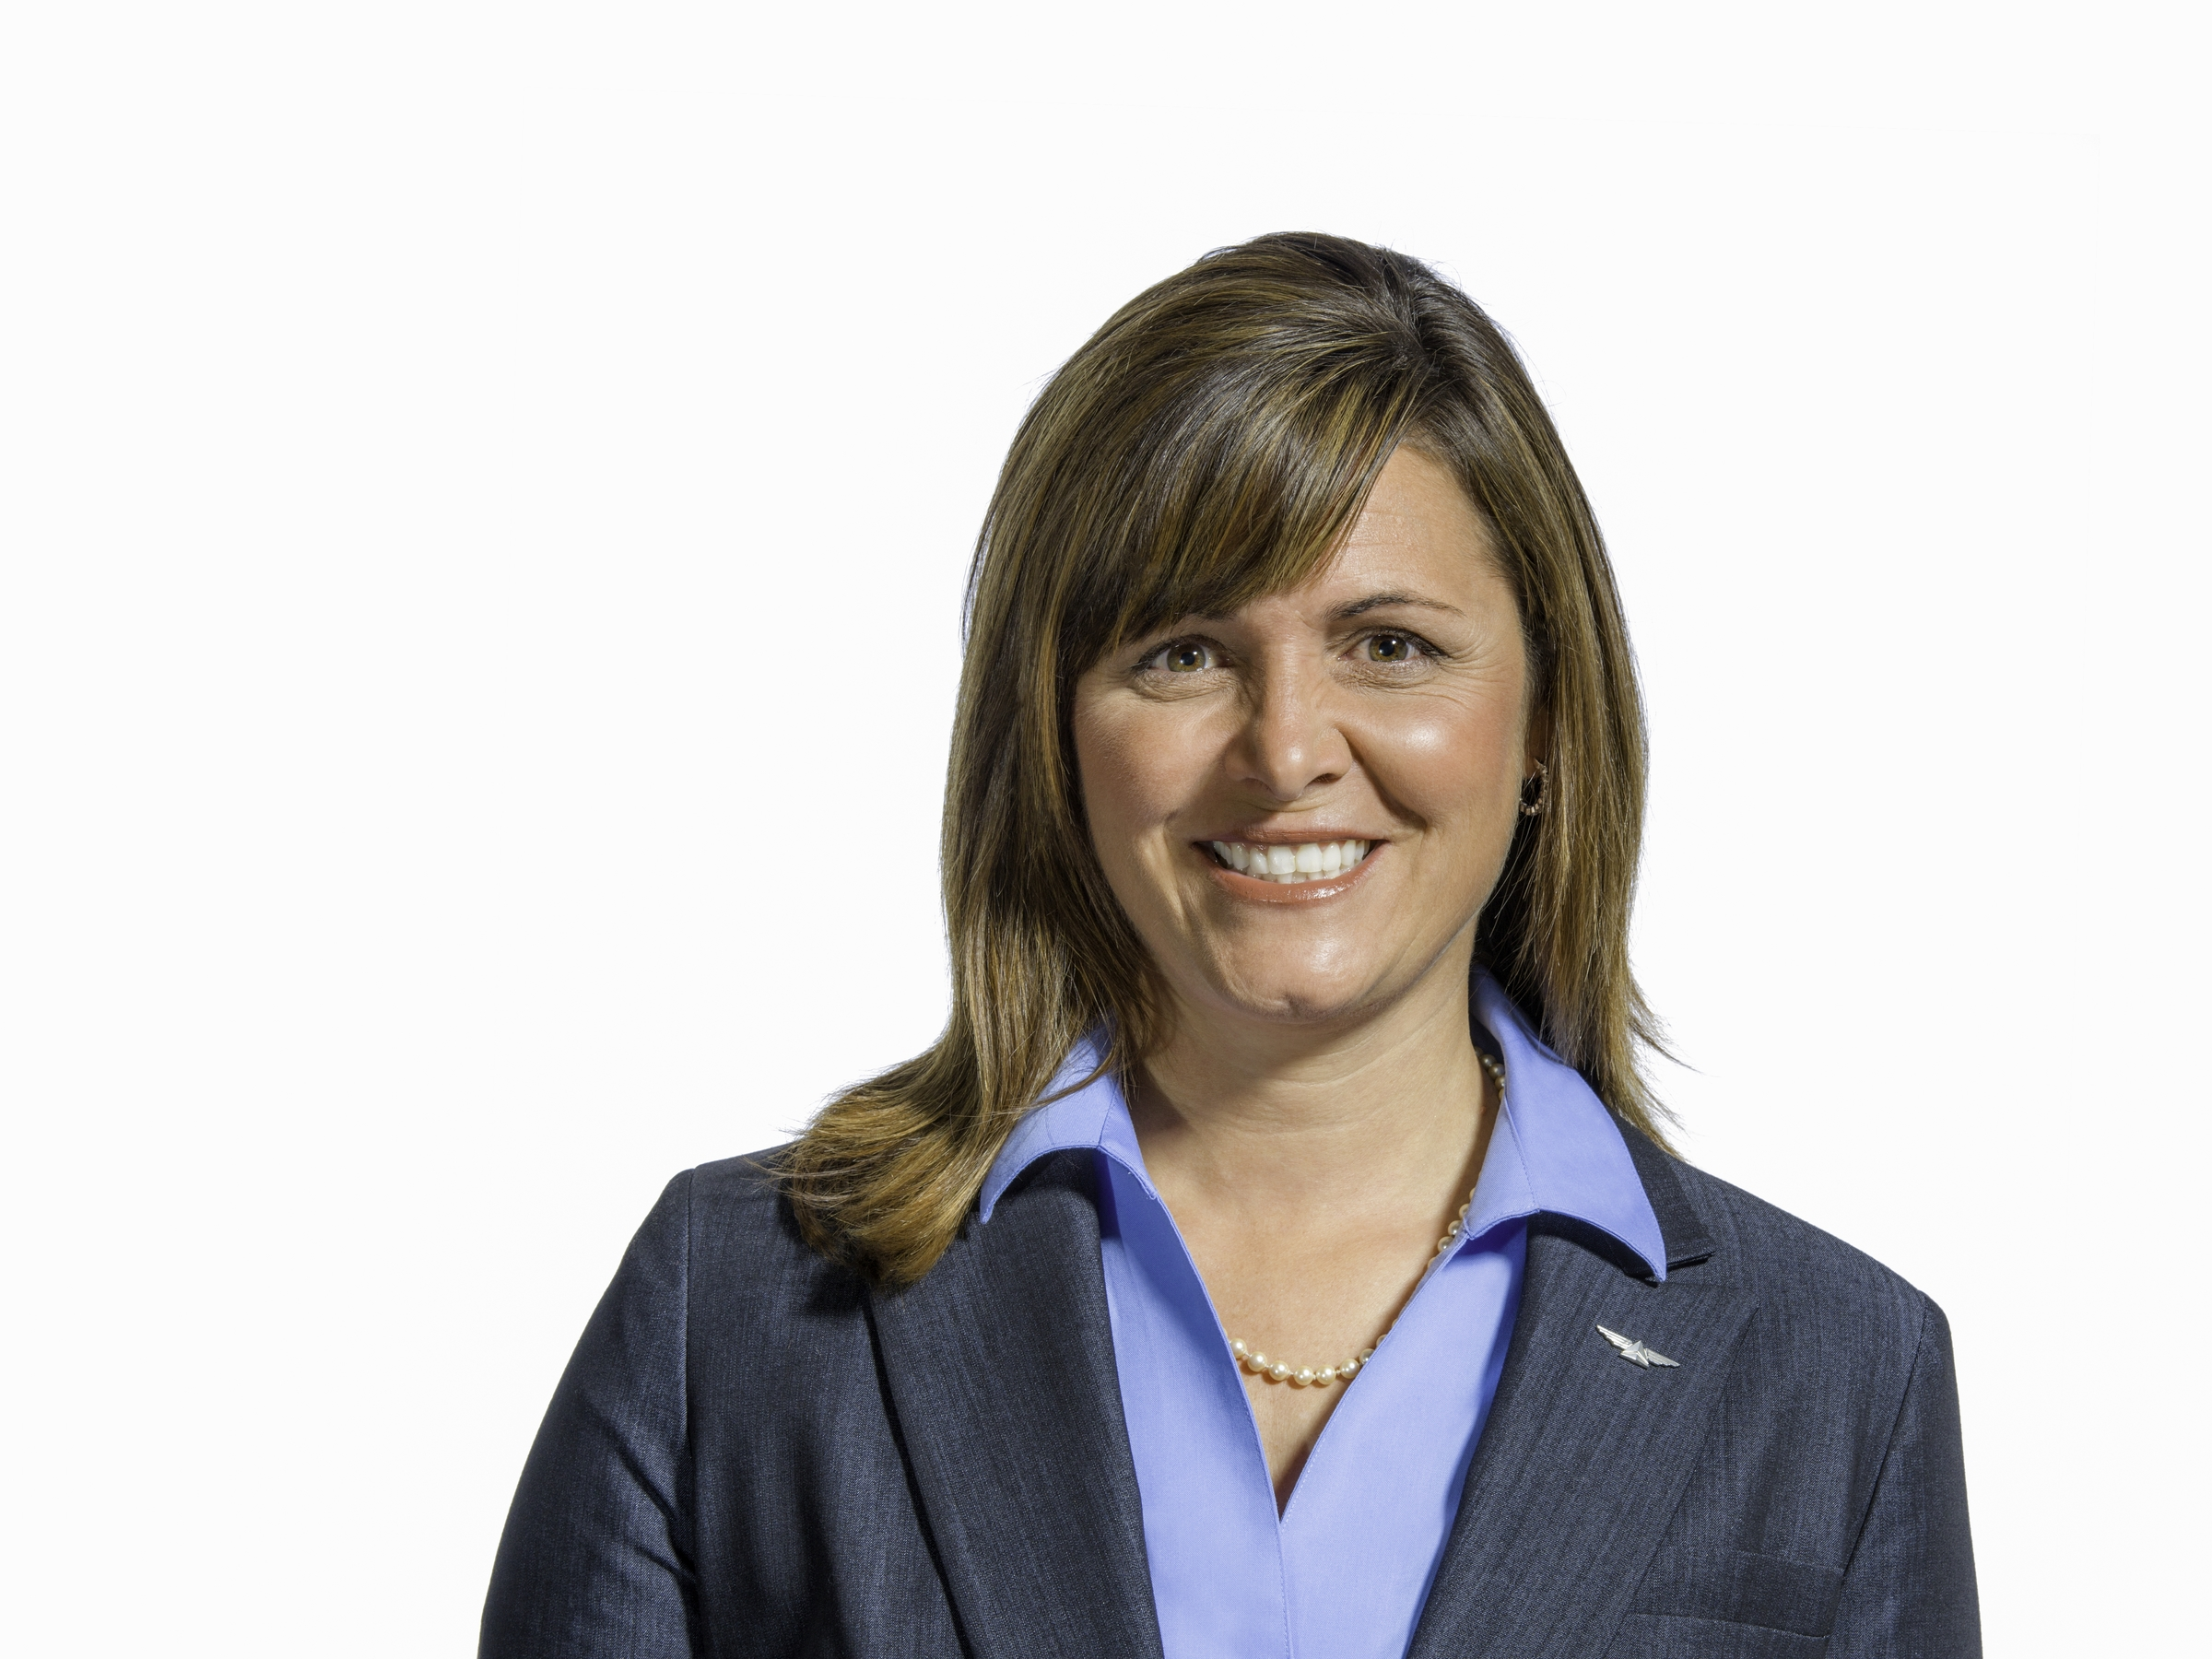 Theresa Wise - S.V.P. and Chief Information Officer